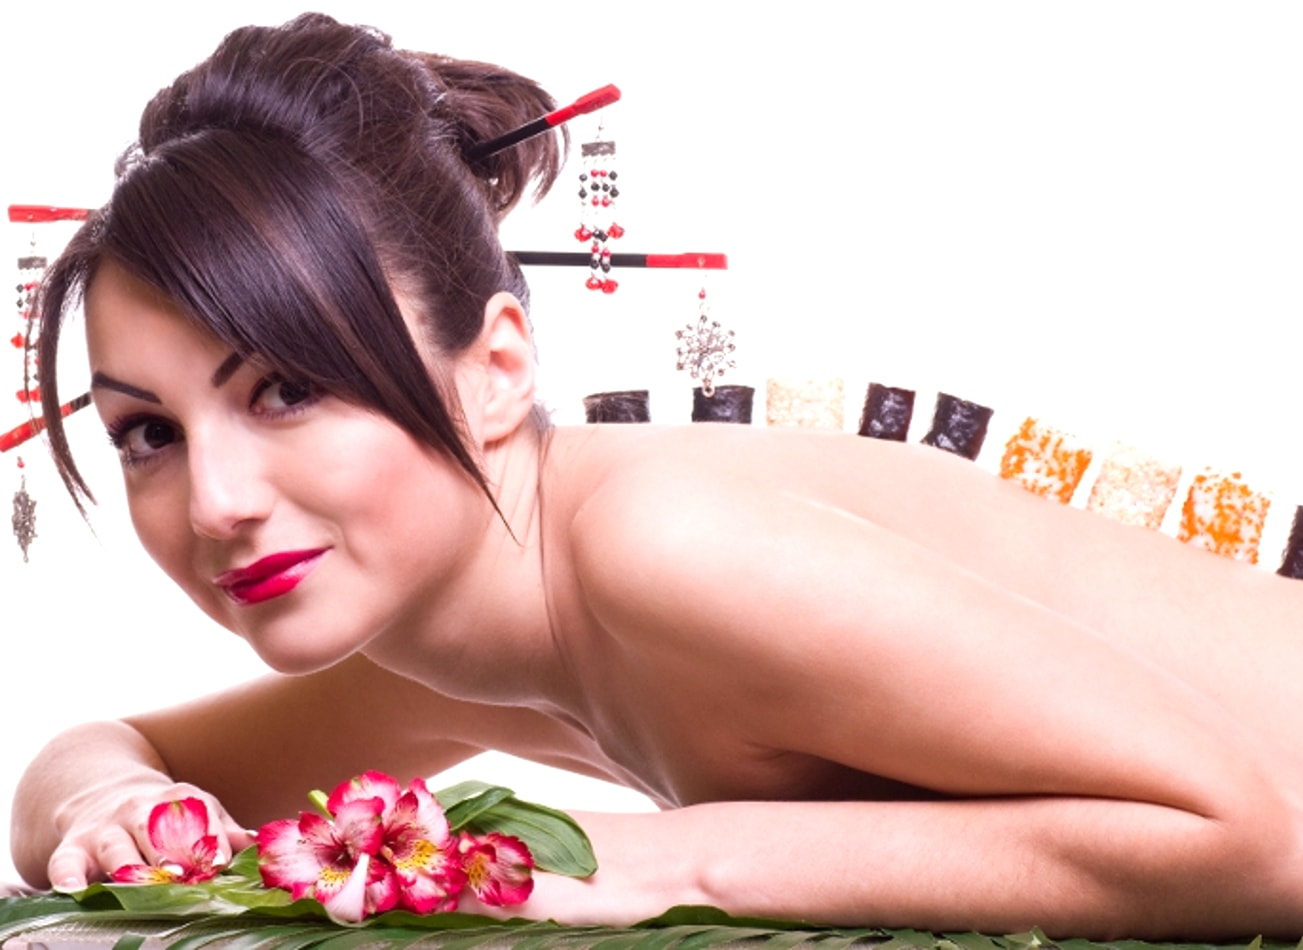 body sushi strip bucarest activites vimigo